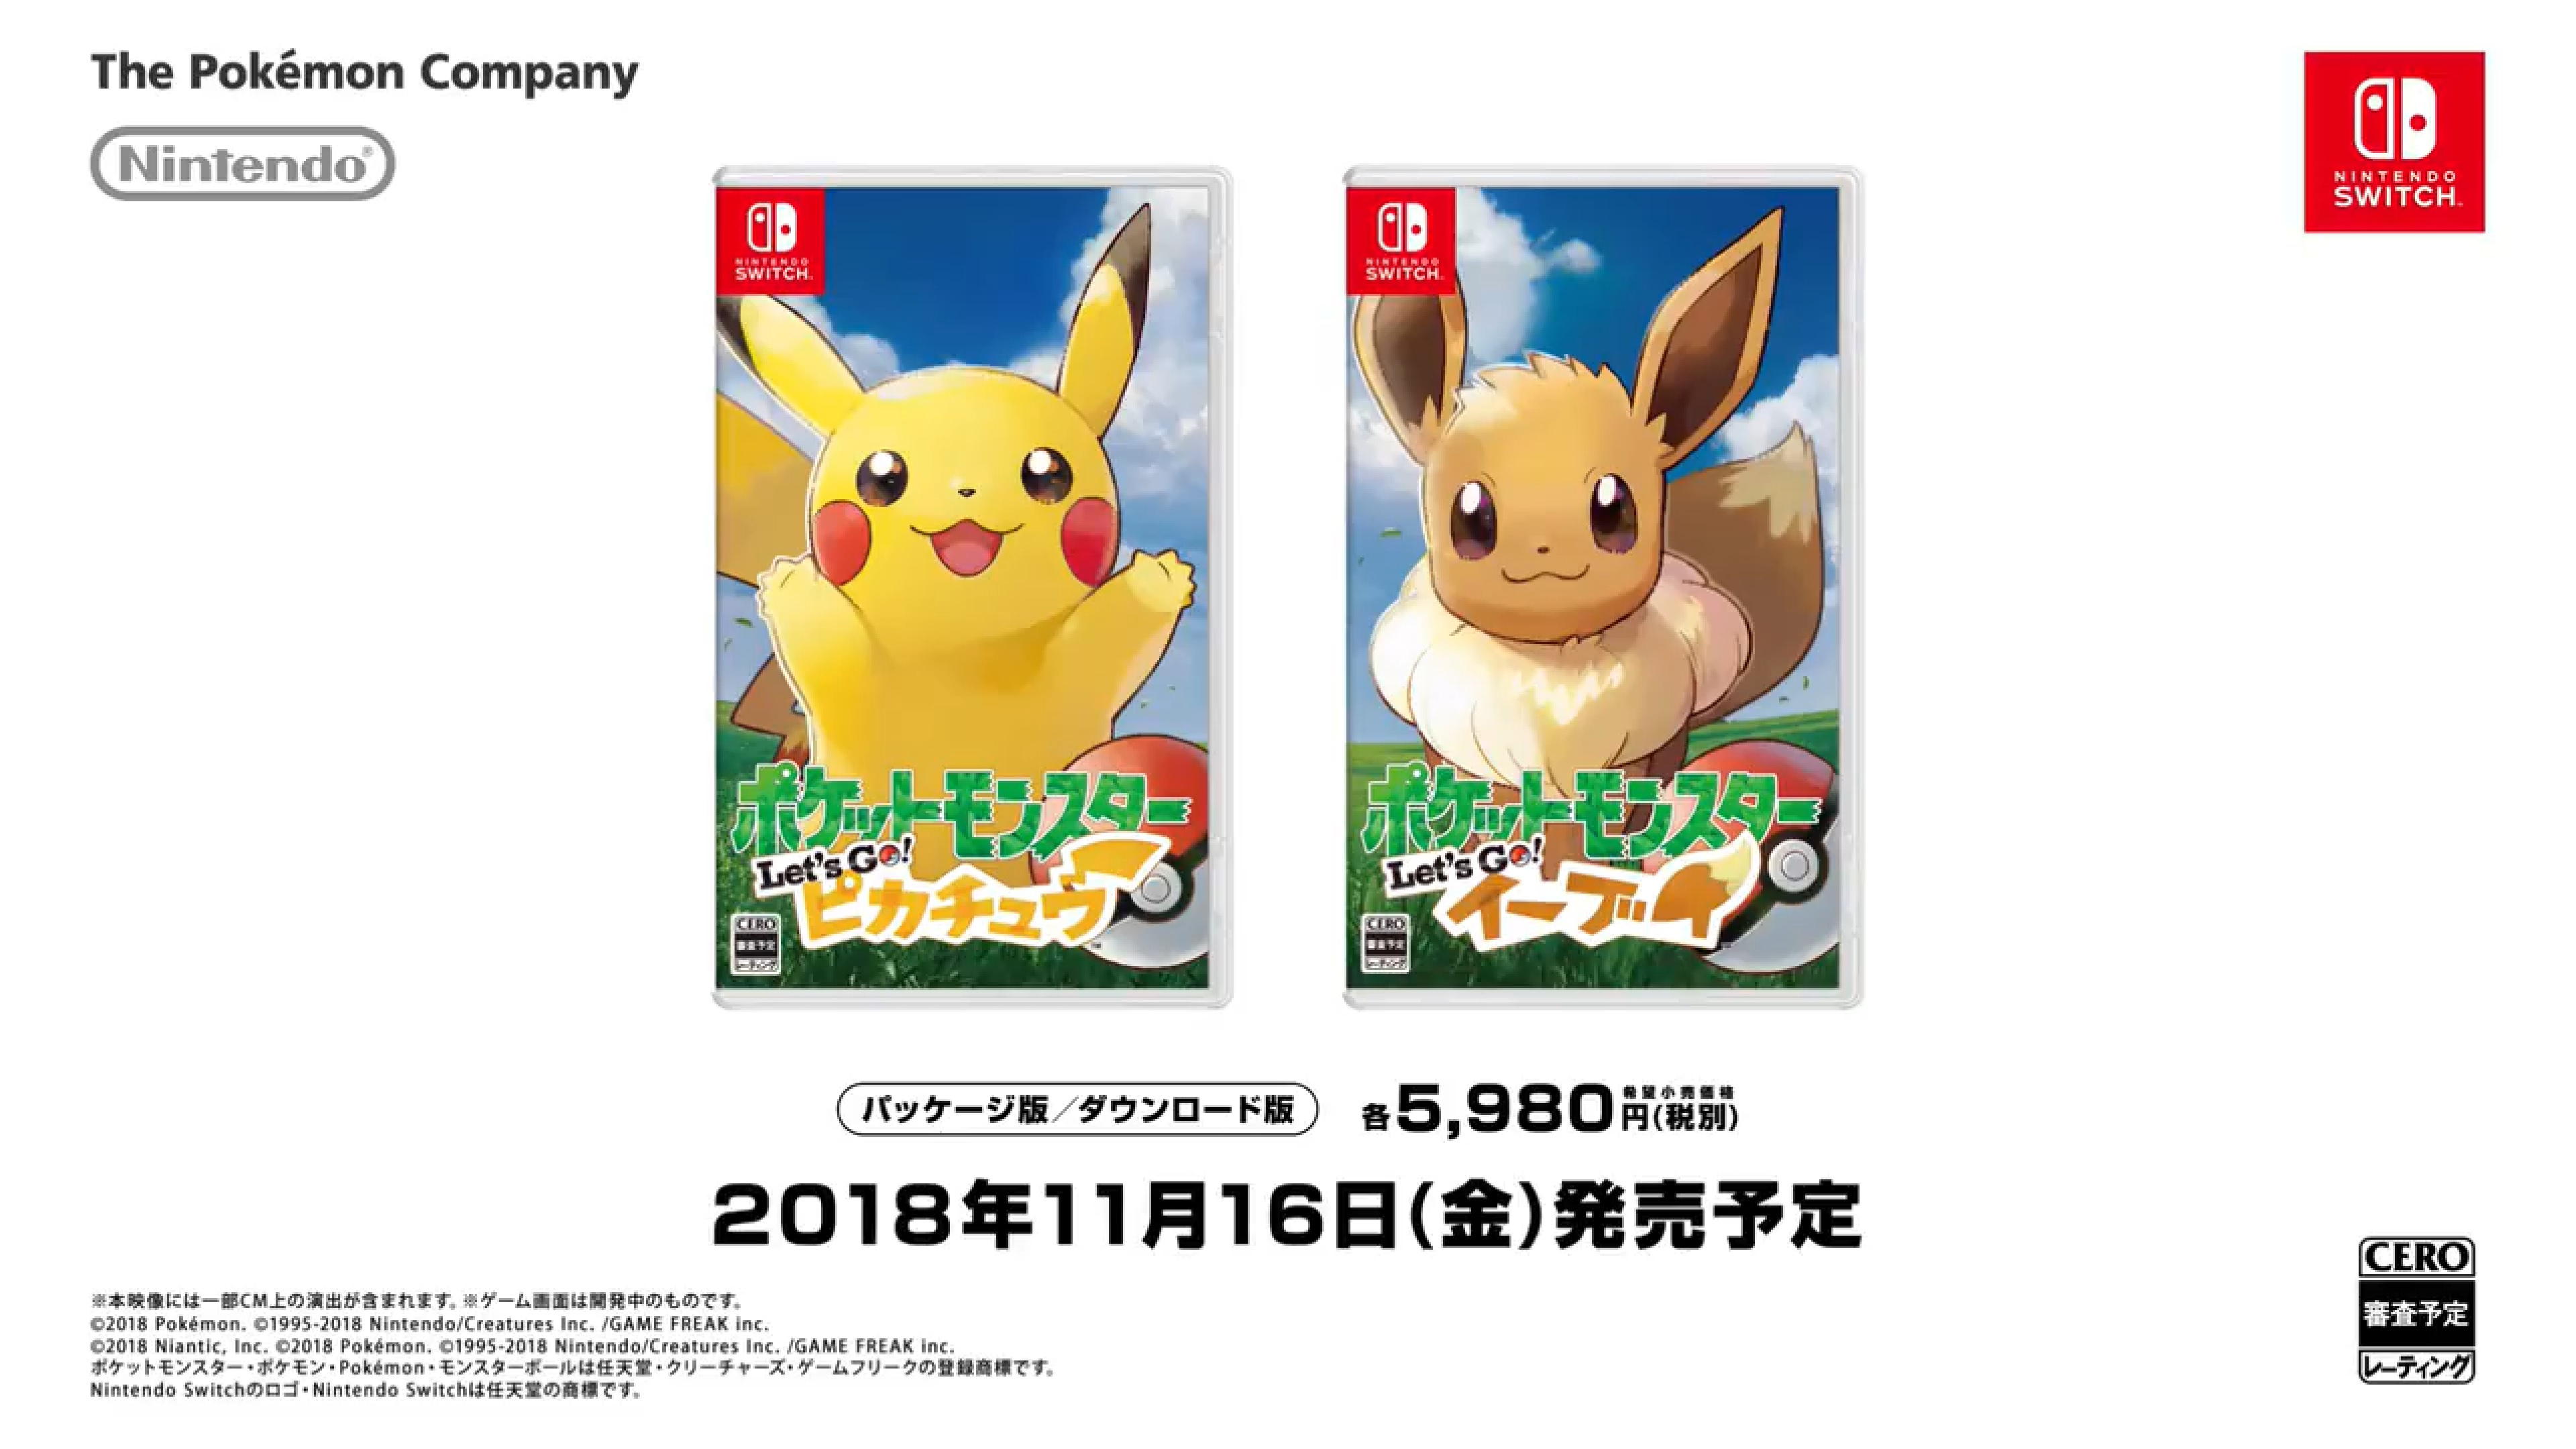 Pokemon Lets Go Eevee And Pikachu Launched Last Week Around The World Including In Japan Just Three Days It Sold Over 650000